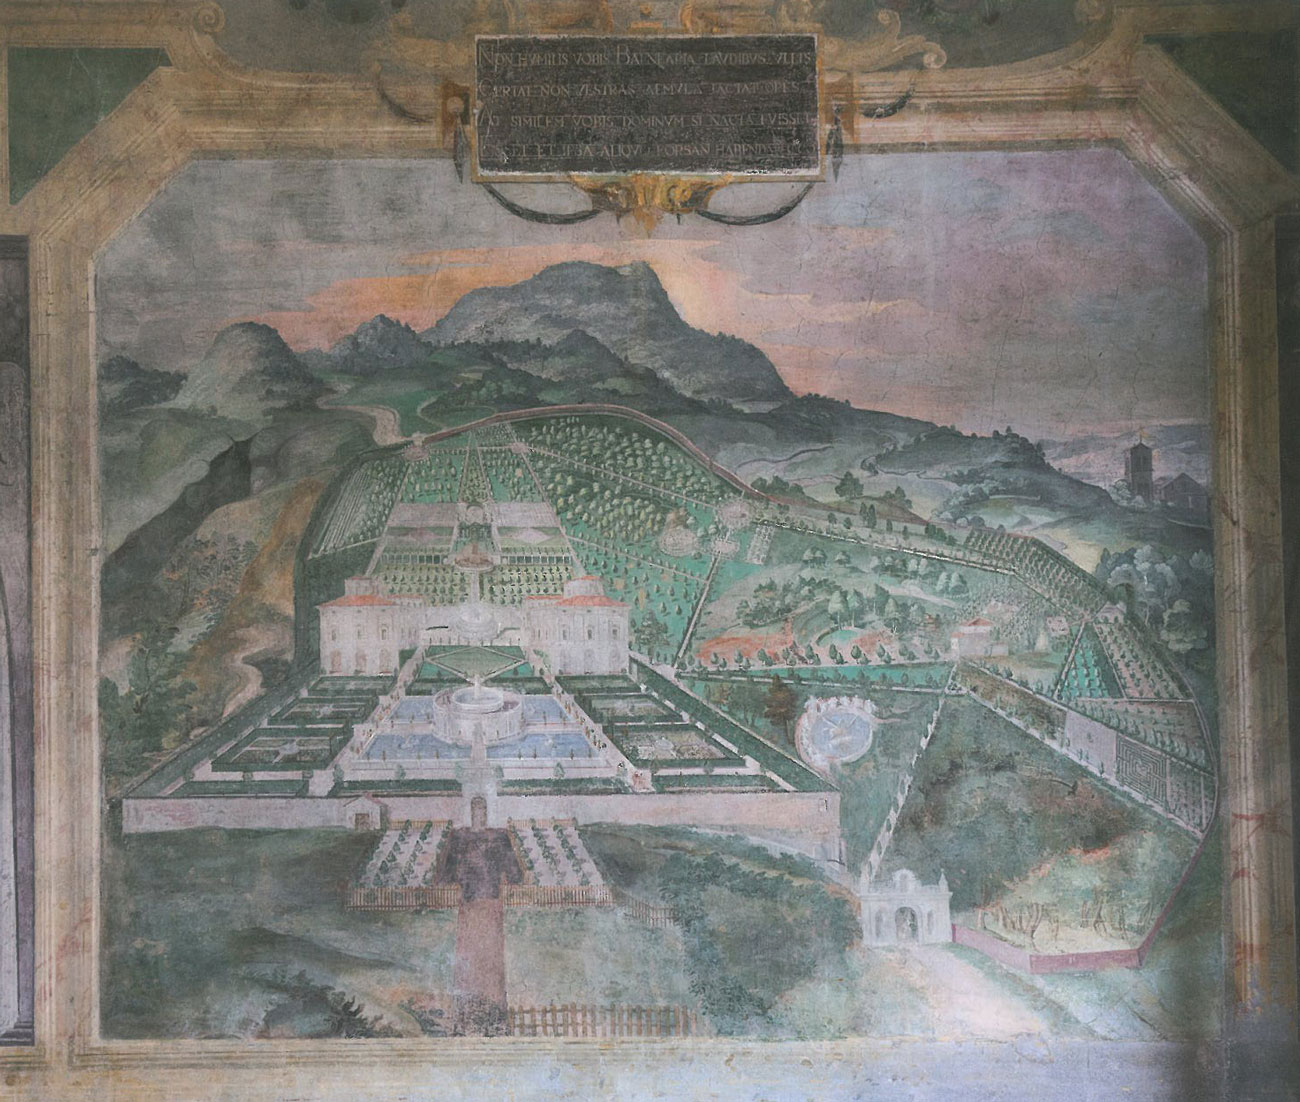 Palazzina Gambara Loggia. A fresco of Villa Lante's own gardens. Image courtesy of Il Pegaso Bookshop, in Bagnaia.